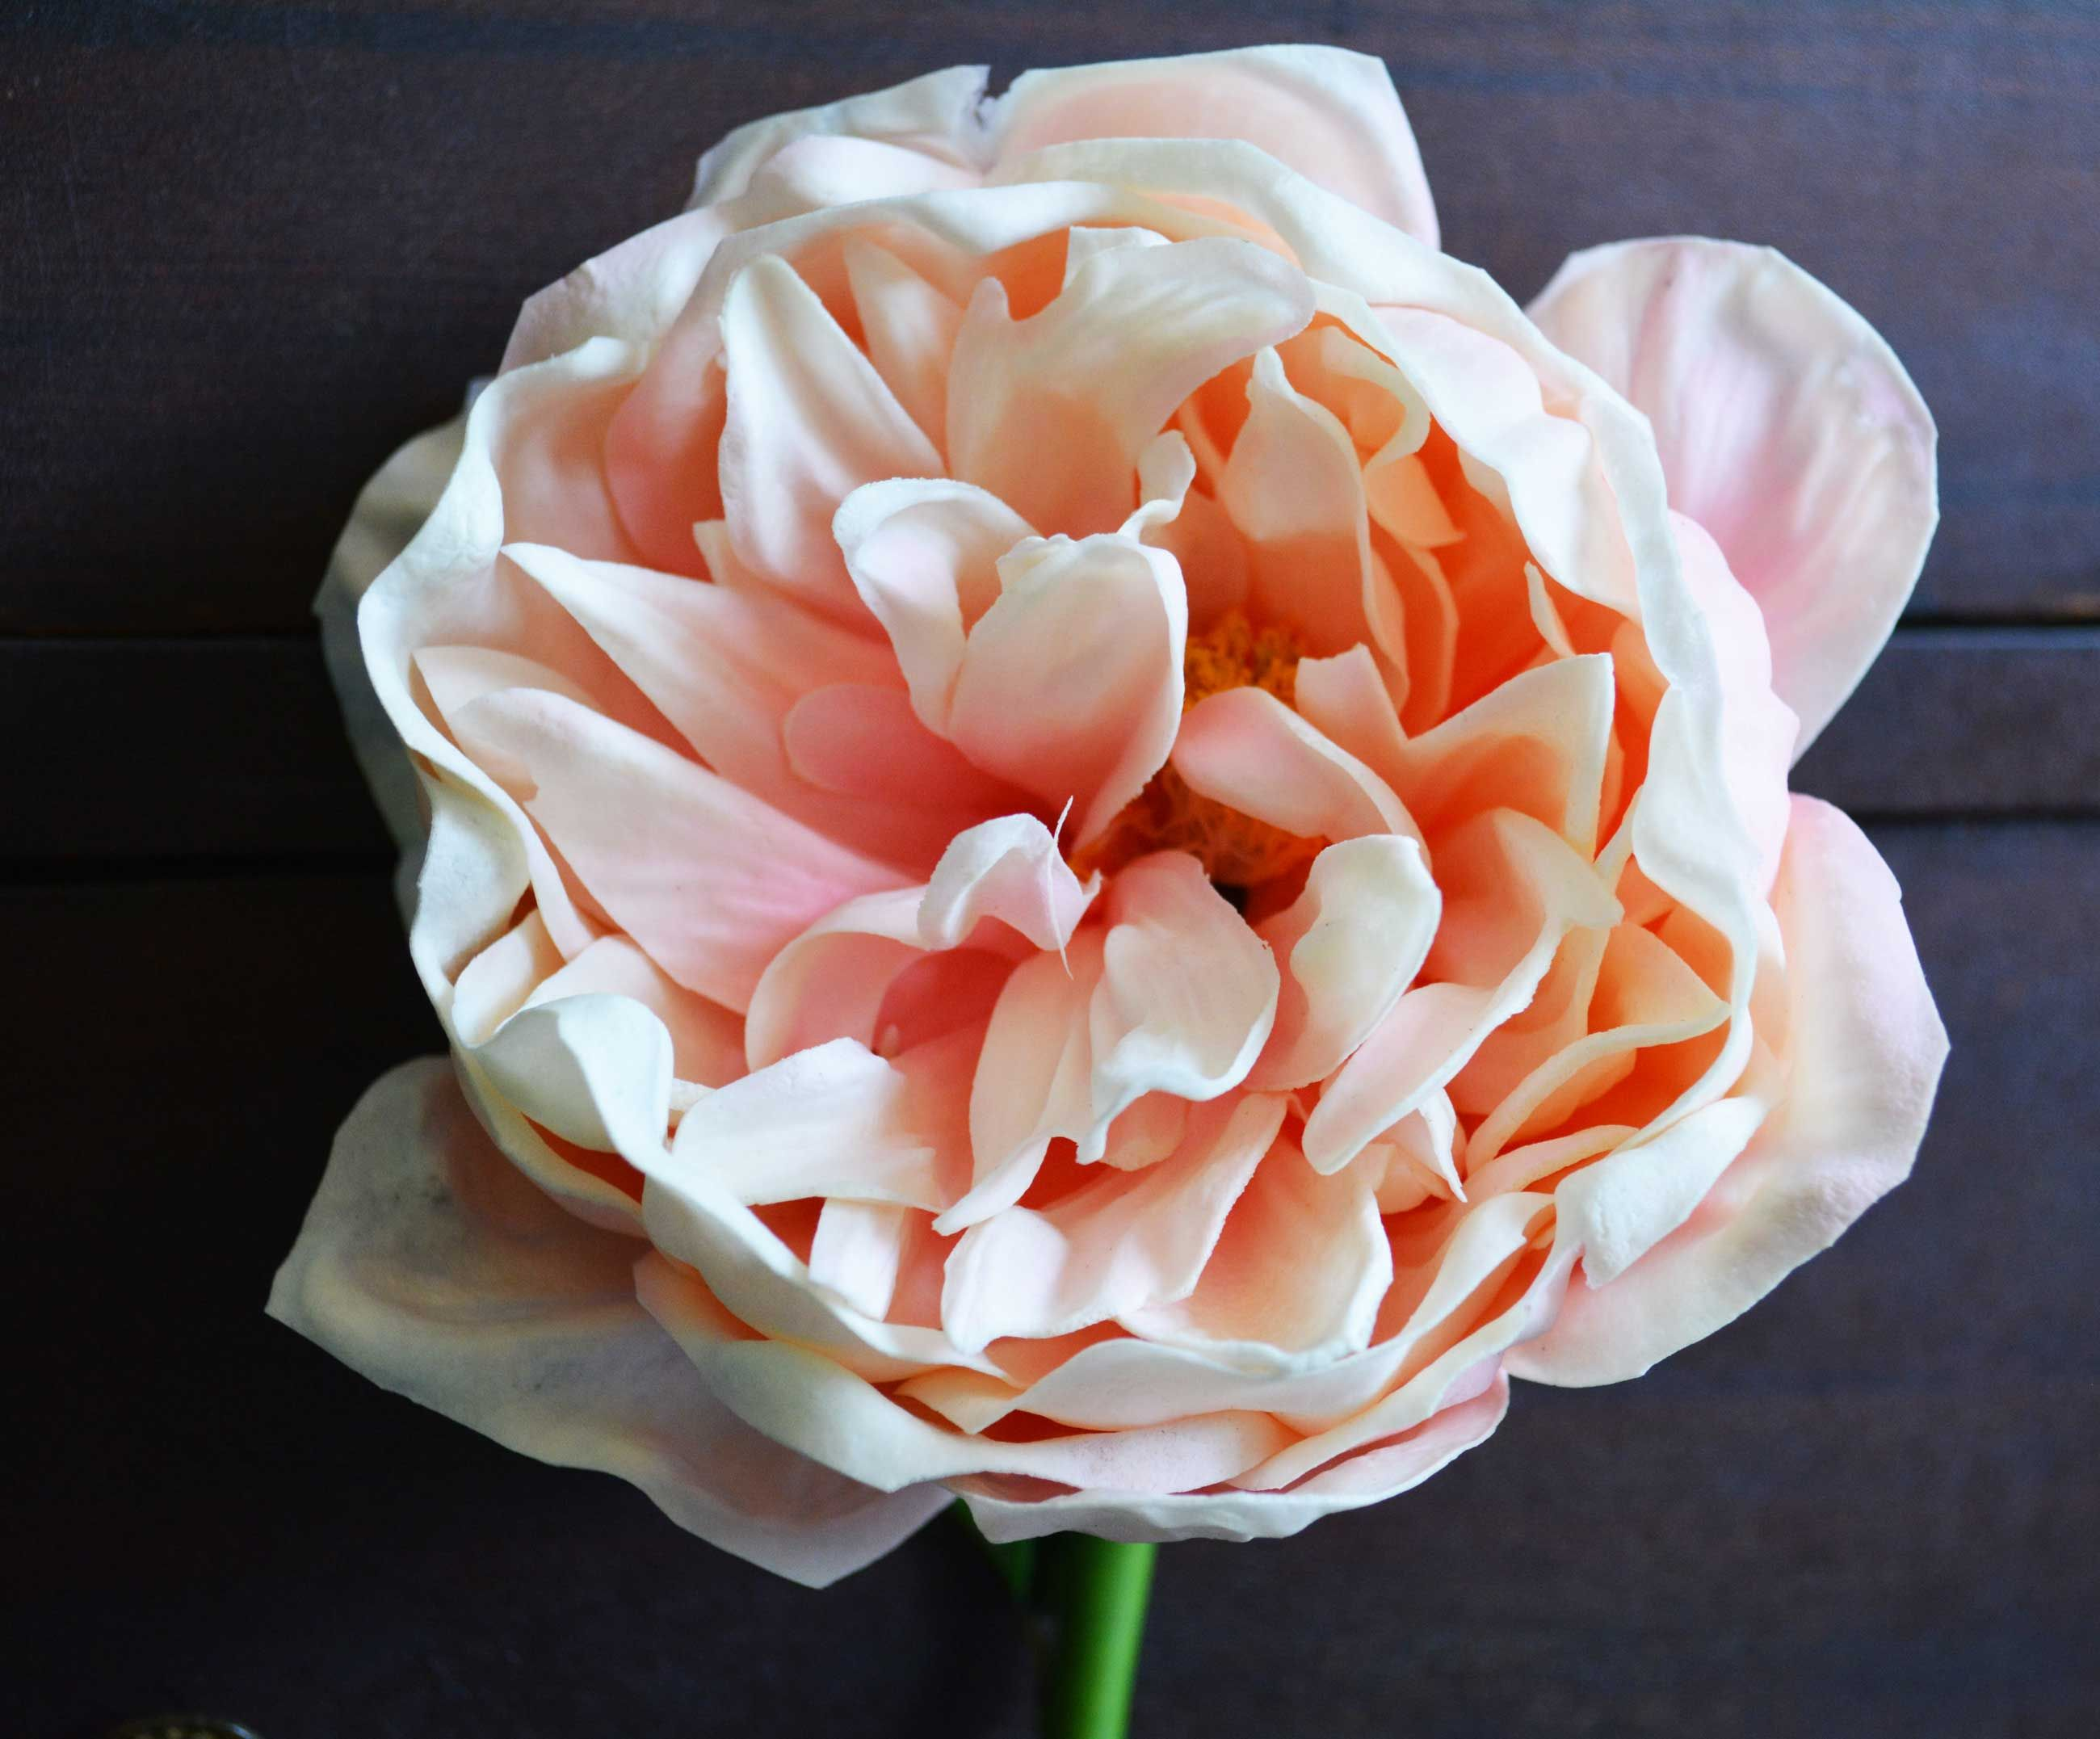 Home bulk roses peach roses - Stunning Real Touch Peony In Cream And Pink Measures 30 Inches Tall With A Inch In Diameter Flower Head Perfect For Artificial Bridal Bouquets And Wedding